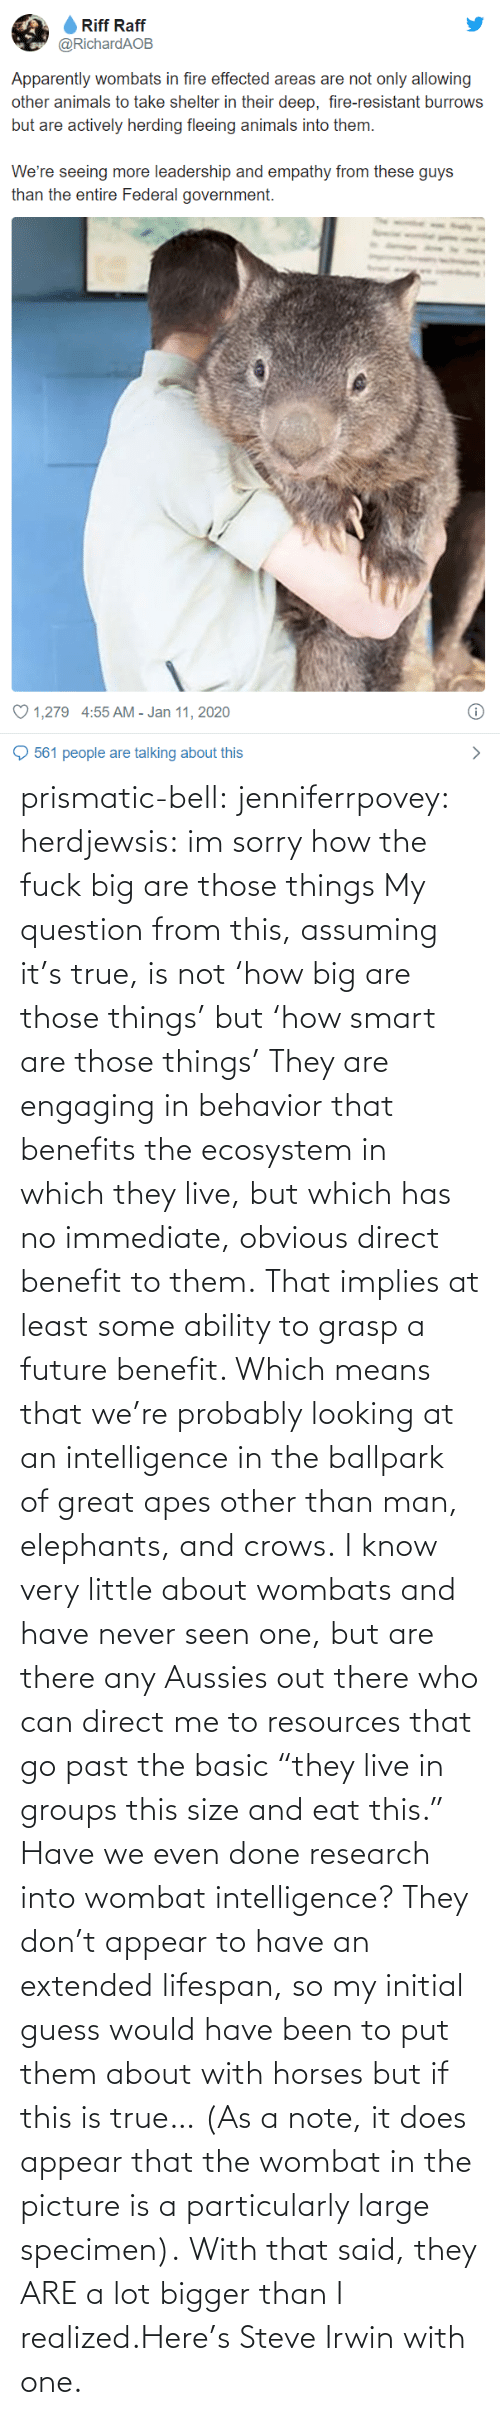 "Which: prismatic-bell:  jenniferrpovey: herdjewsis: im sorry how the fuck big are those things My question from this, assuming it's true, is not 'how big are those things' but 'how smart are those things' They are engaging in behavior that benefits the ecosystem in which they live, but which has no immediate, obvious direct benefit to them. That implies at least some ability to grasp a future benefit. Which means that we're probably looking at an intelligence in the ballpark of great apes other than man, elephants, and crows. I know very little about wombats and have never seen one, but are there any Aussies out there who can direct me to resources that go past the basic ""they live in groups this size and eat this."" Have we even done research into wombat intelligence? They don't appear to have an extended lifespan, so my initial guess would have been to put them about with horses but if this is true… (As a note, it does appear that the wombat in the picture is a particularly large specimen).  With that said, they ARE a lot bigger than I realized.Here's Steve Irwin with one."